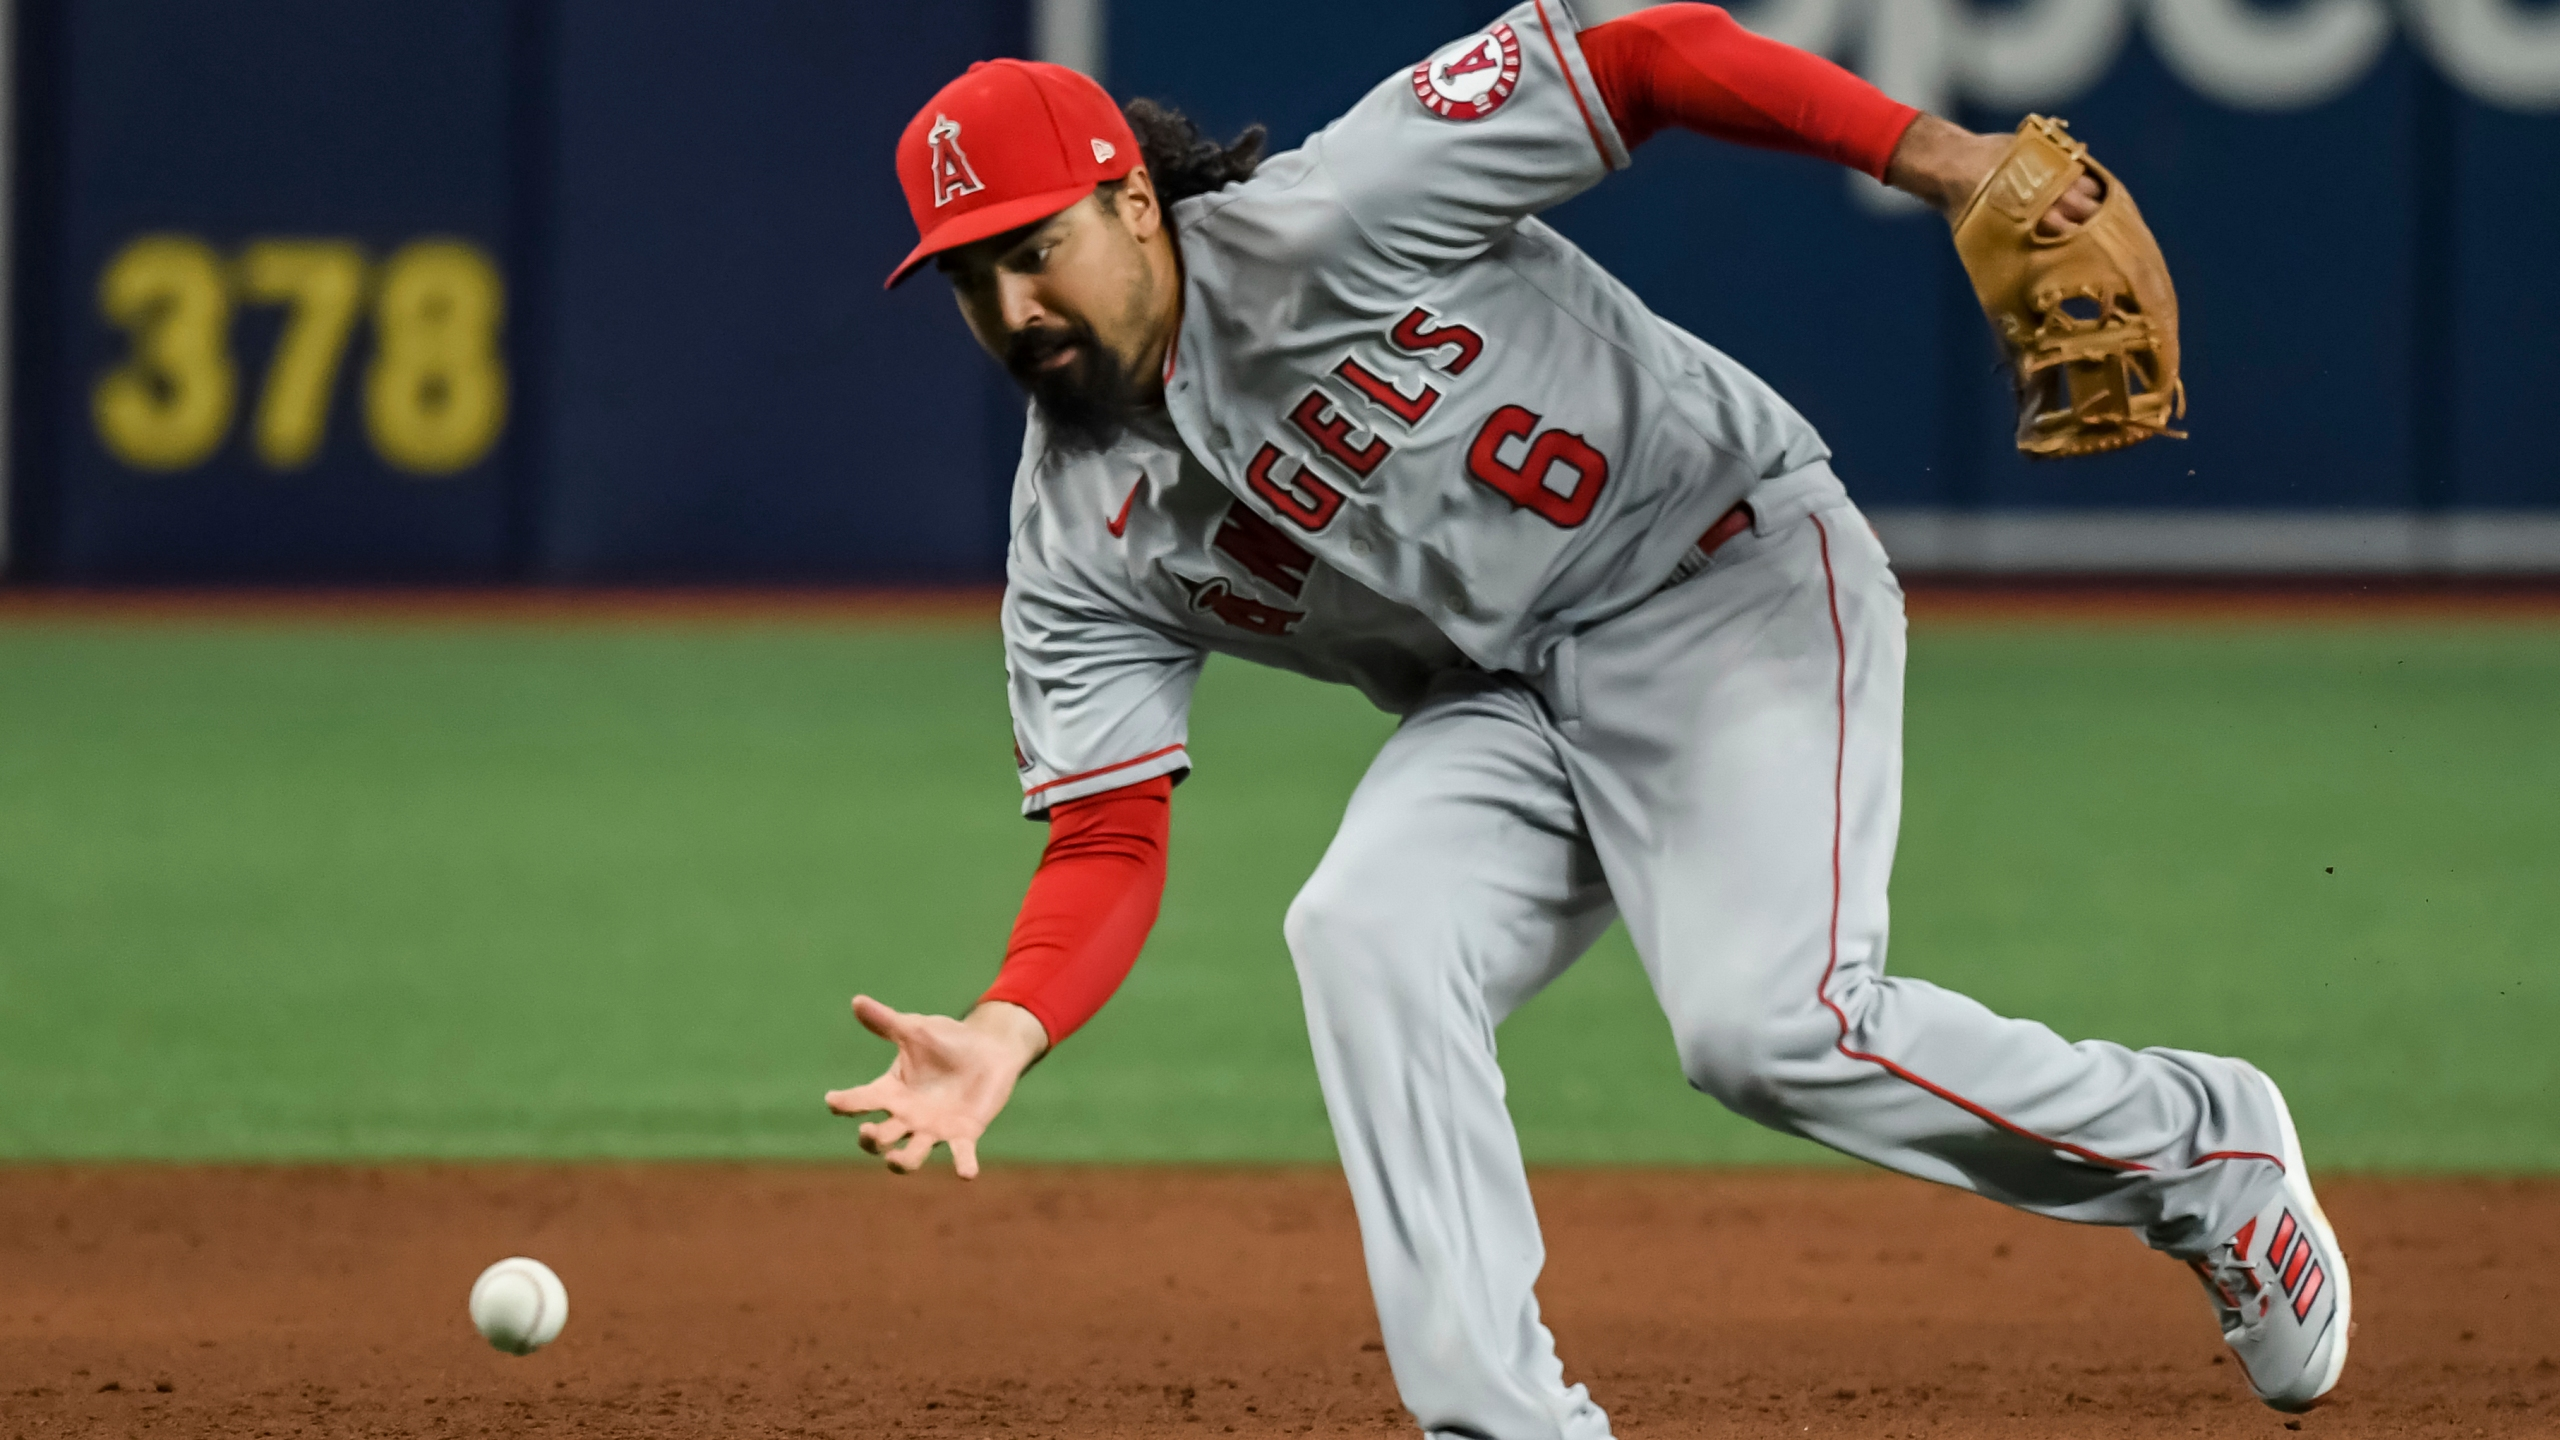 In this June 25, 2021, file photo, Los Angeles Angels third baseman Anthony Rendon reaches for a ball that went for an infield base hit by Tampa Bay Rays ' Kevin Kiermaier during the sixth inning of a game in St. Petersburg, Fla. (Steve Nesius/Associated Press)